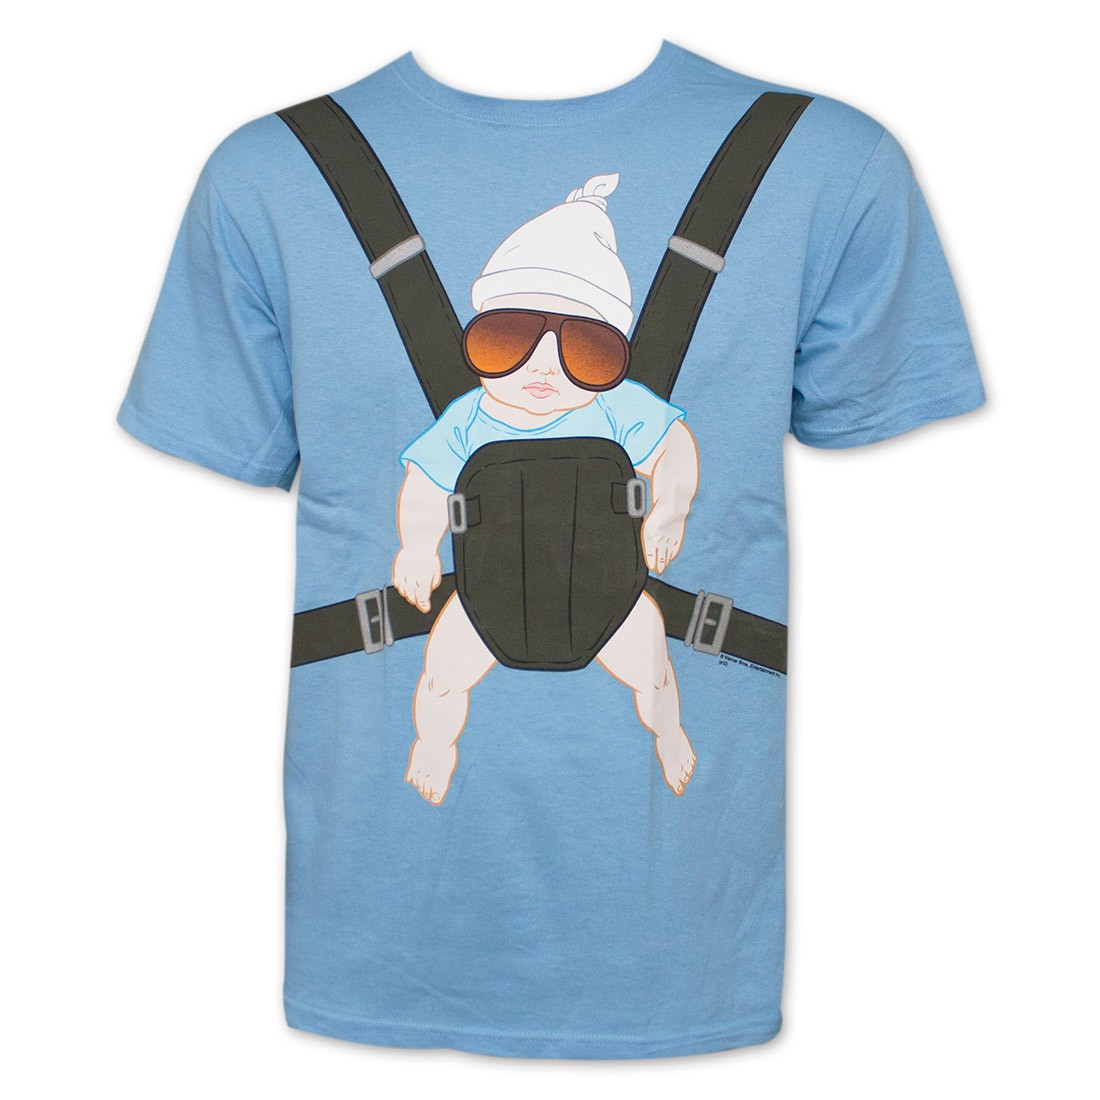 The Hangover Baby Carrier Blue Graphic Tee Shirt